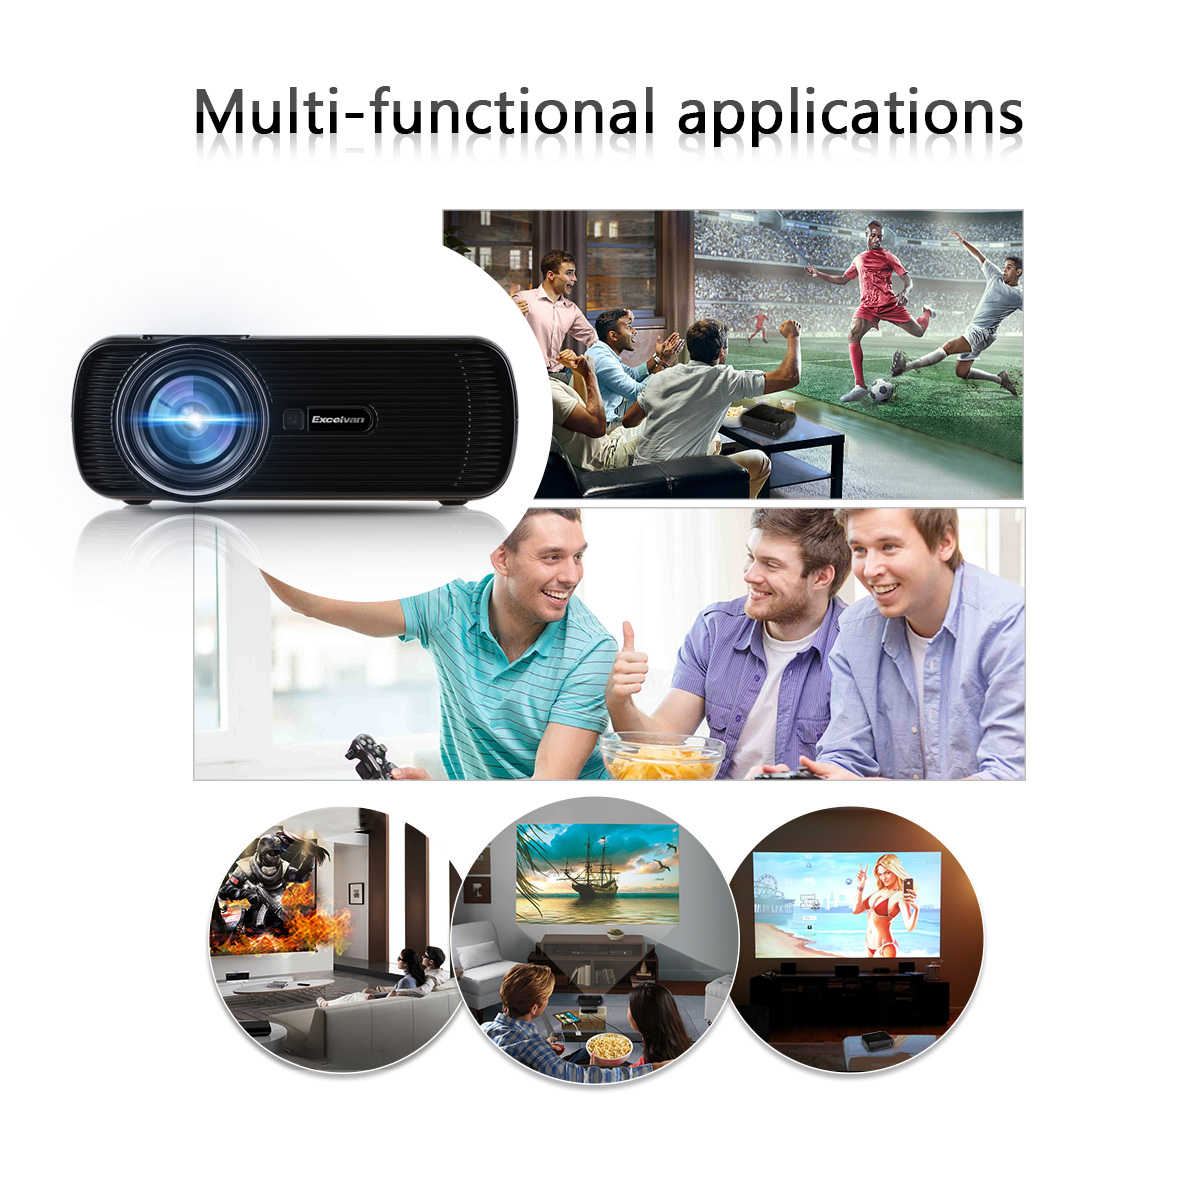 Excelvan 1500 Lumens Portable Mini Multimedia LCD Projector for Indoor Outdoor Home Cinema Theater, Office, Classroom